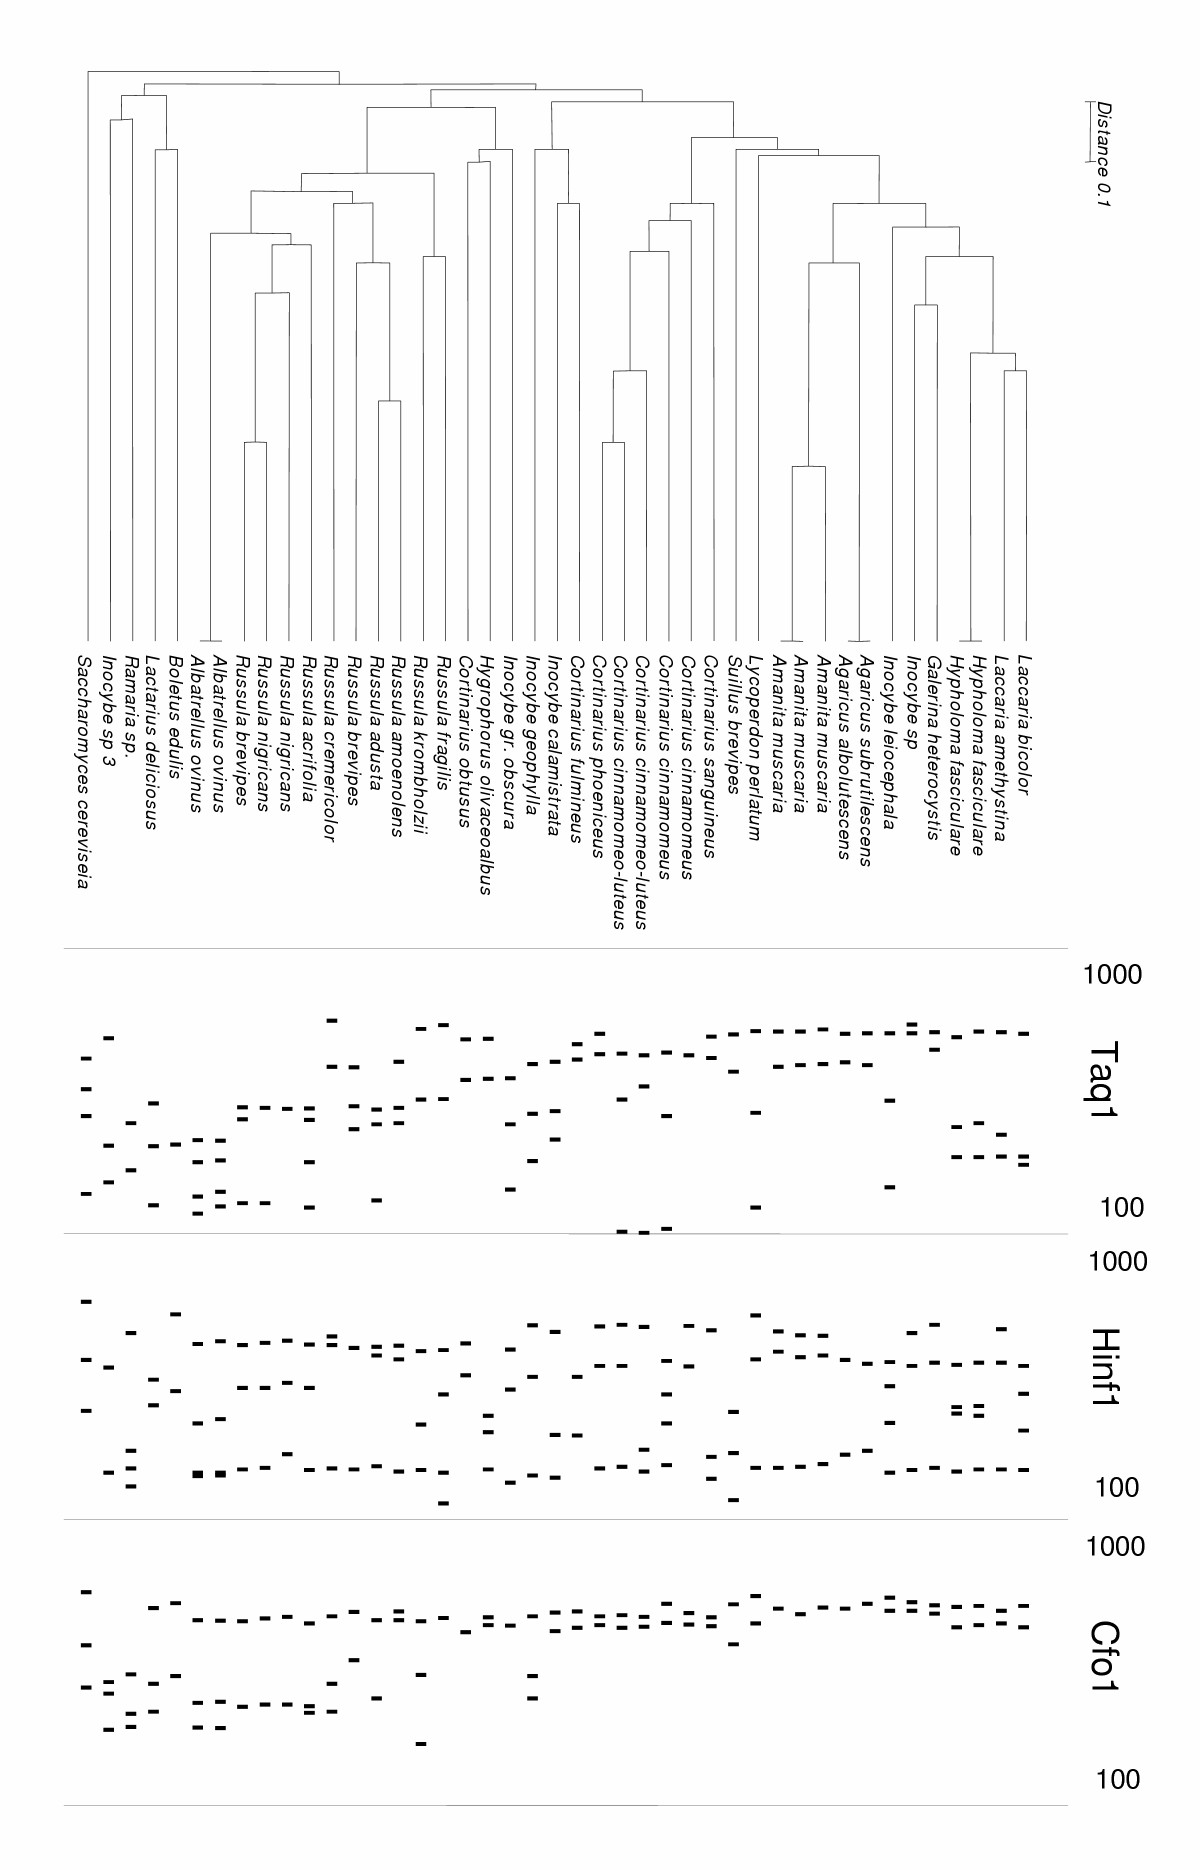 http://static-content.springer.com/image/art%3A10.1186%2F1471-2180-5-28/MediaObjects/12866_2004_Article_175_Fig4_HTML.jpg